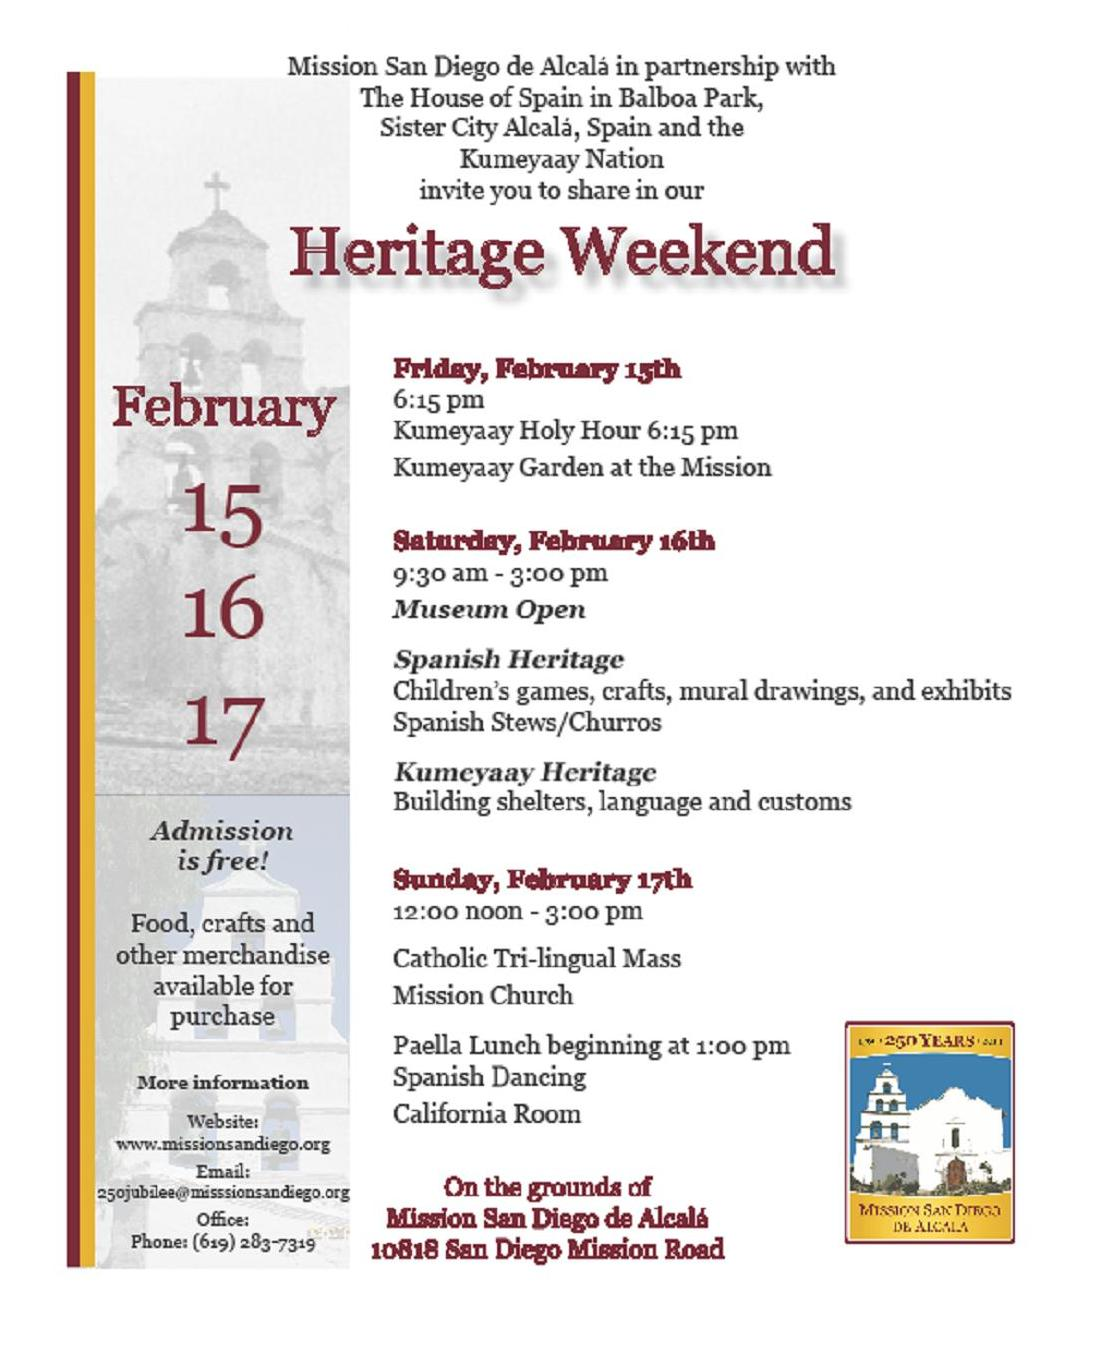 2019 Jubilee Year Heritage Weekend at the Mission